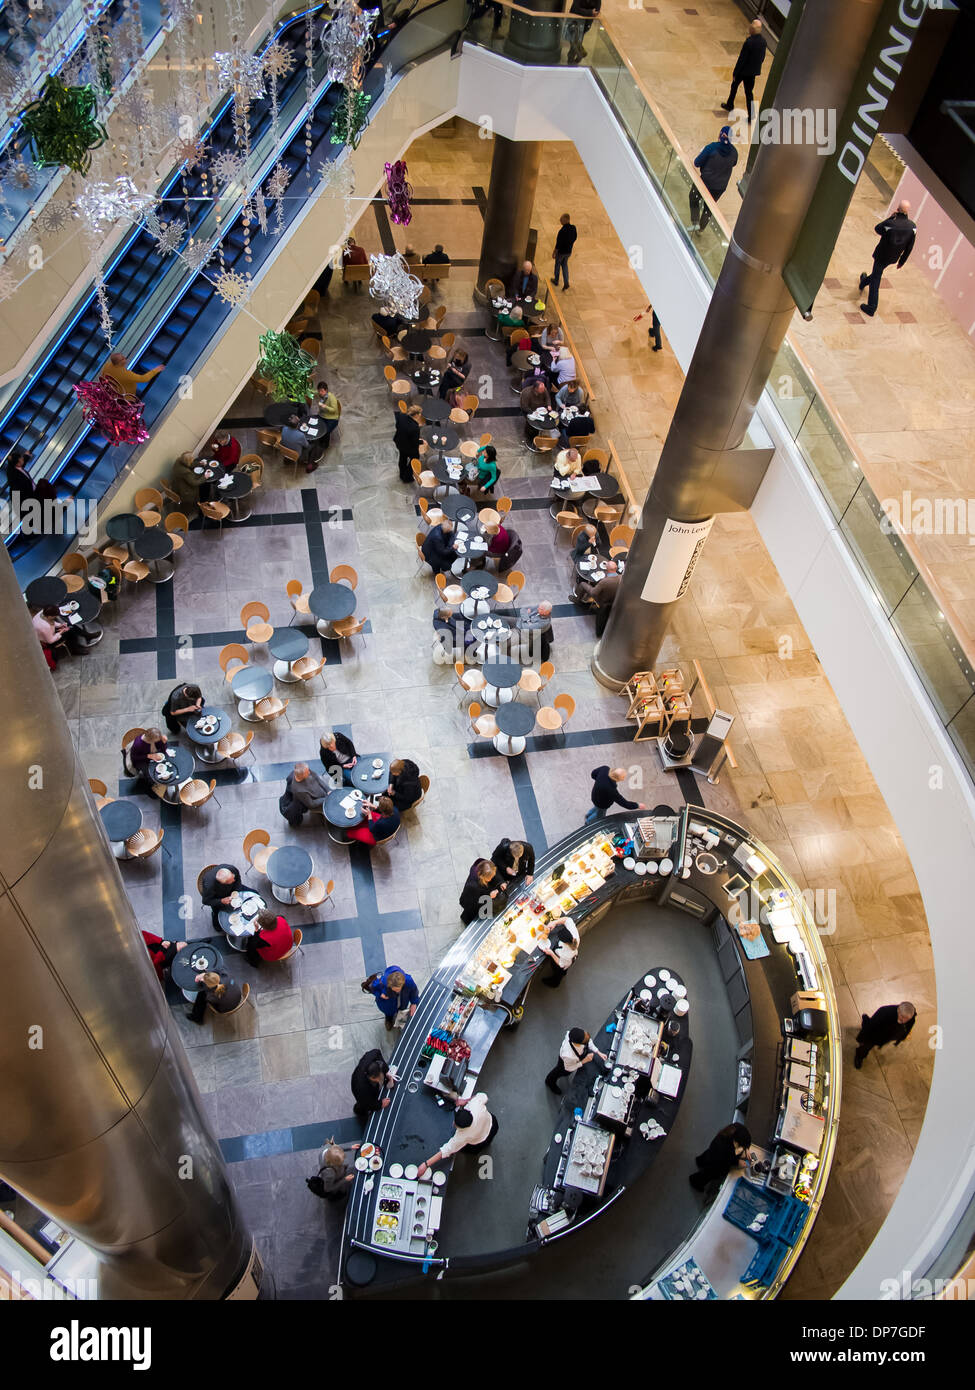 a-busy-food-court-and-cafeteria-within-a